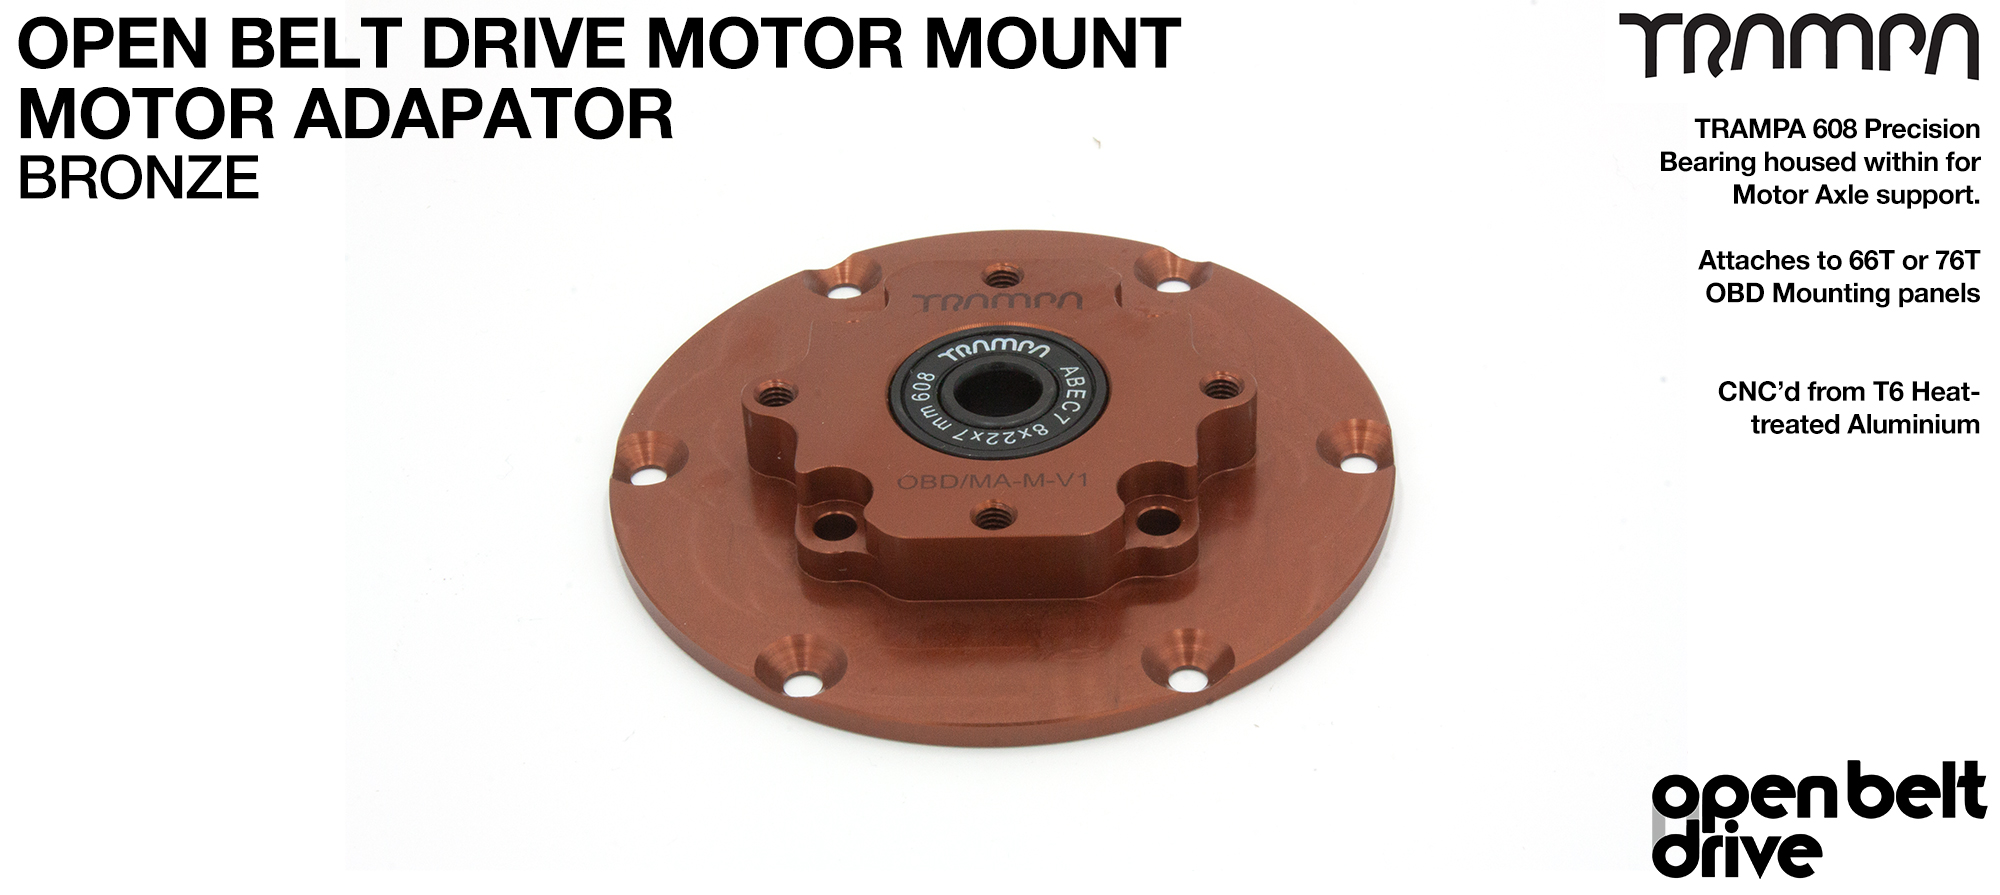 BRONZE OBD Motor Adaptor with Housed Bearing